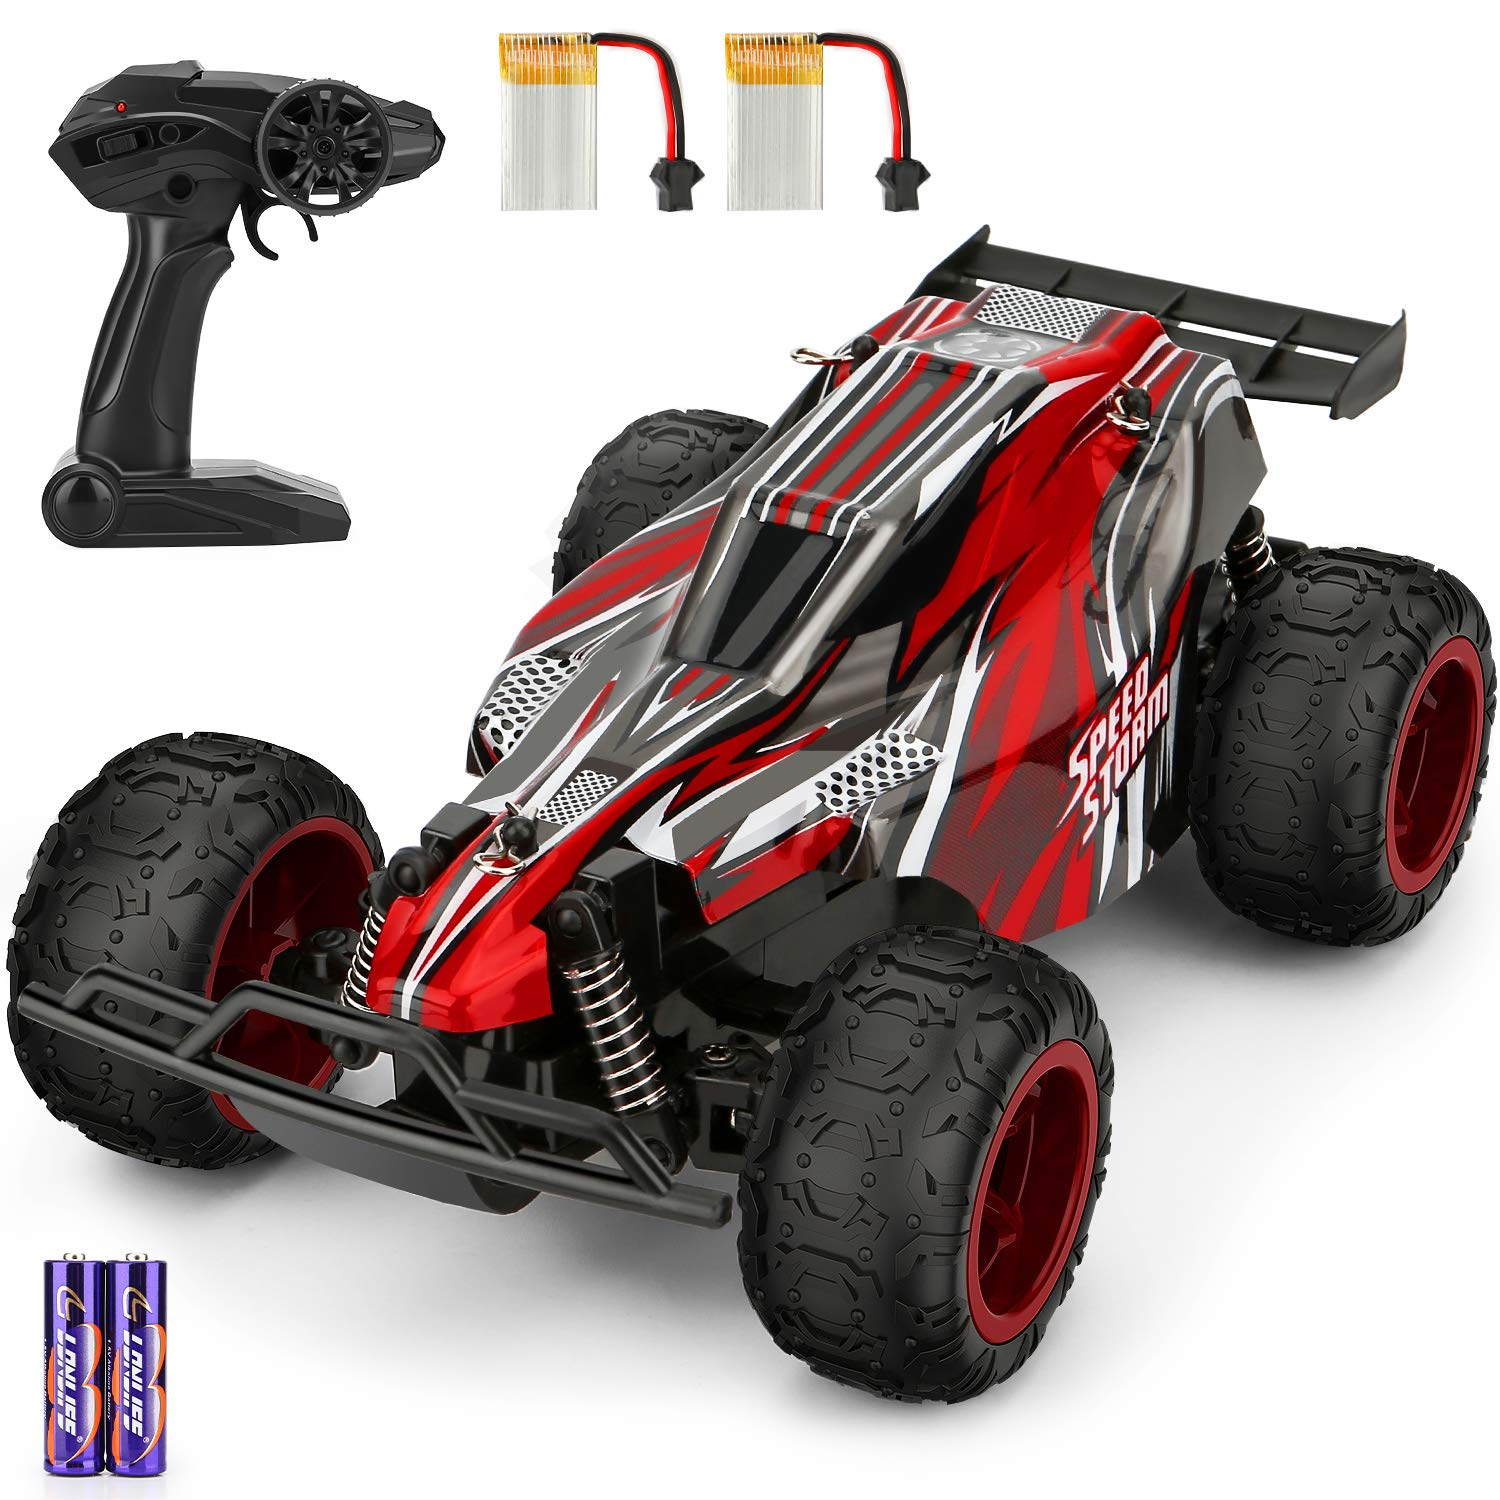 Remote Control Car 1 22 Scale High Speed Rc Racing Truck Include 2 Rechargeable Batteries All Terrain Eletronic Rc Vehicle Toy Gifts For Boys Teens Adults Amazon Com Au Toys Games